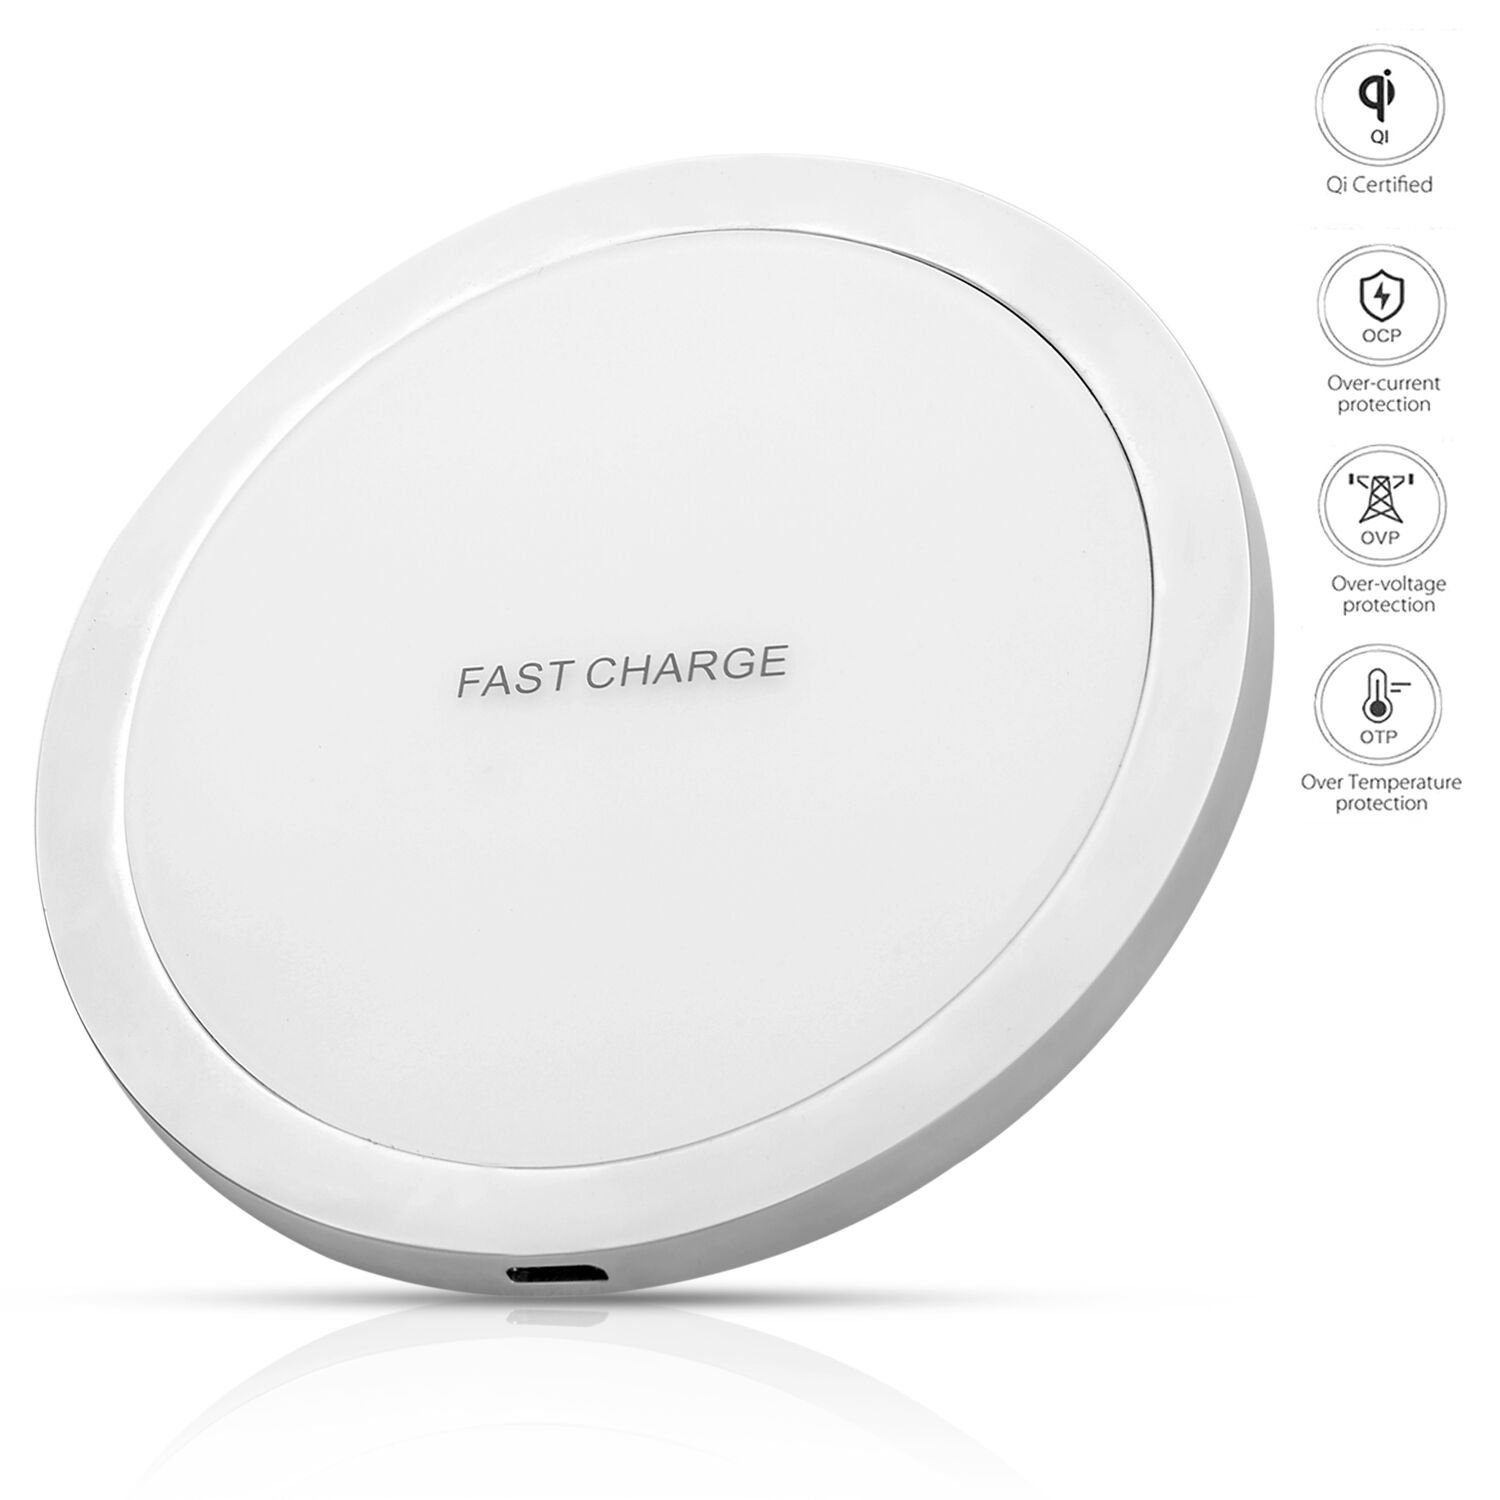 QI Wireless Charger for Cell Phone Fast Wireless Charger Wireless Charger Pad for iPhone X Android Charger Pad for iPhone 8/8 Plus/Samsung Galaxy S8/S8 Plus/Note 8/S6 Edge/HTC/Sony/Windows Phone